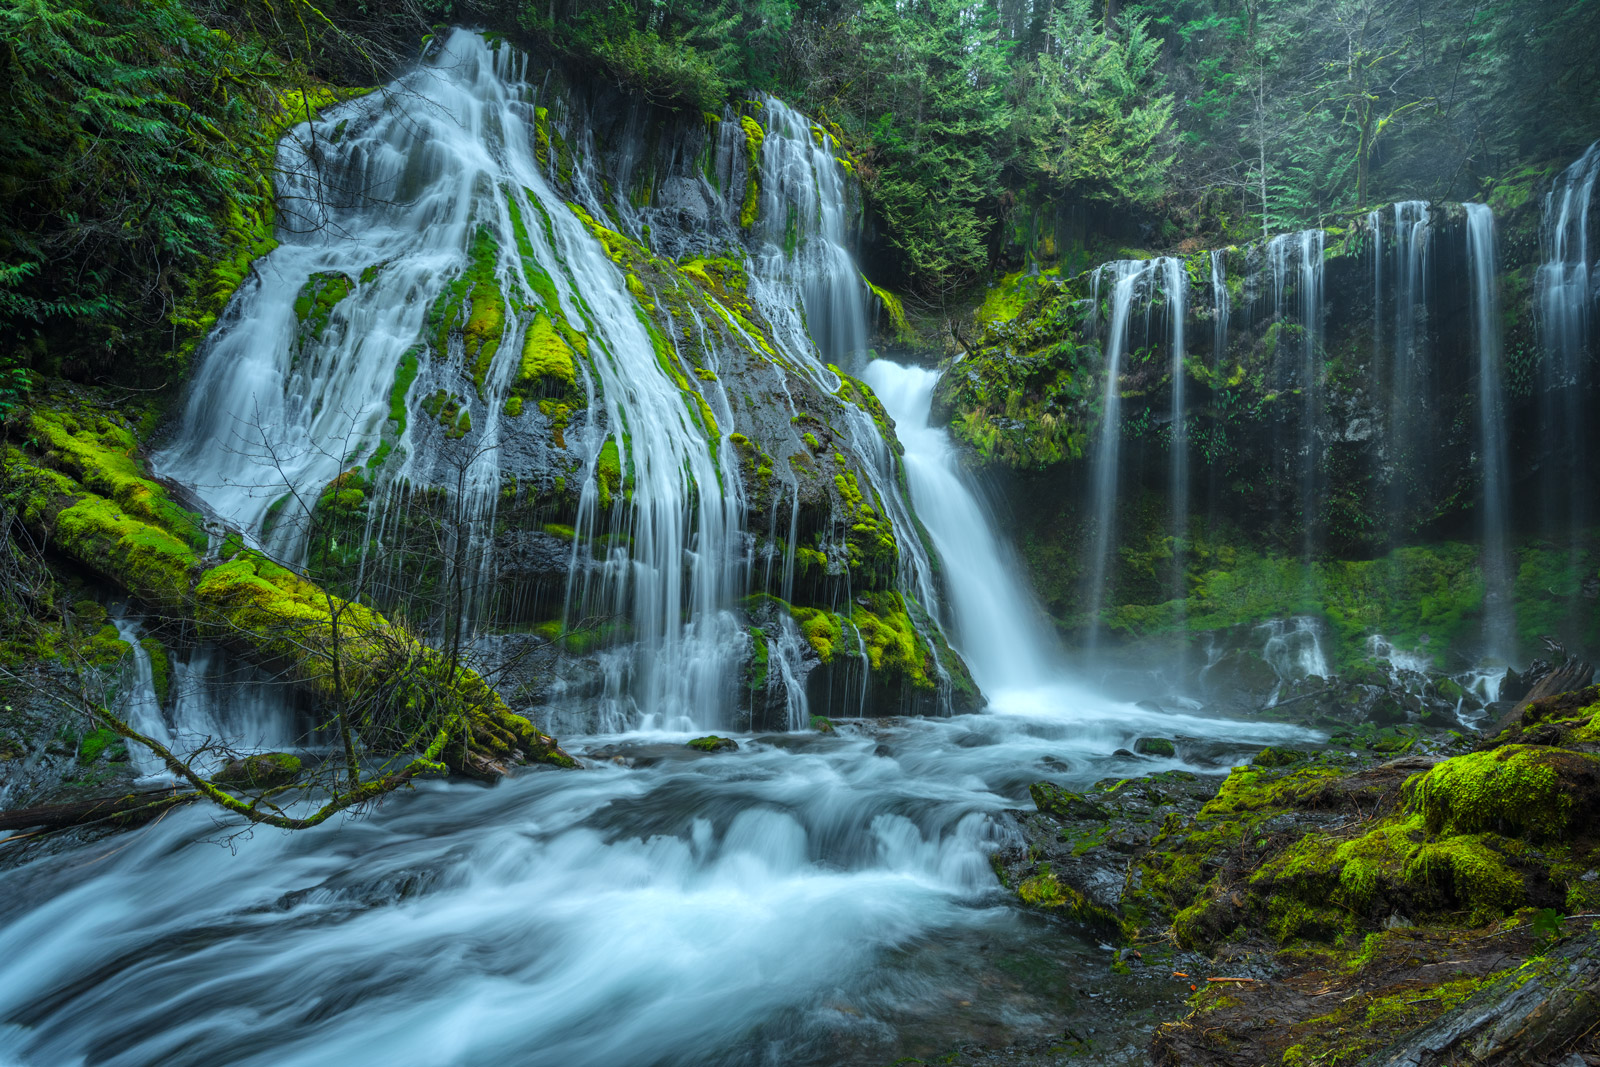 A Limited Edition, Fine Art photograph of Panther Creek Falls in Washington. Available as a Fine Art print, Metal Print or Acrylic...